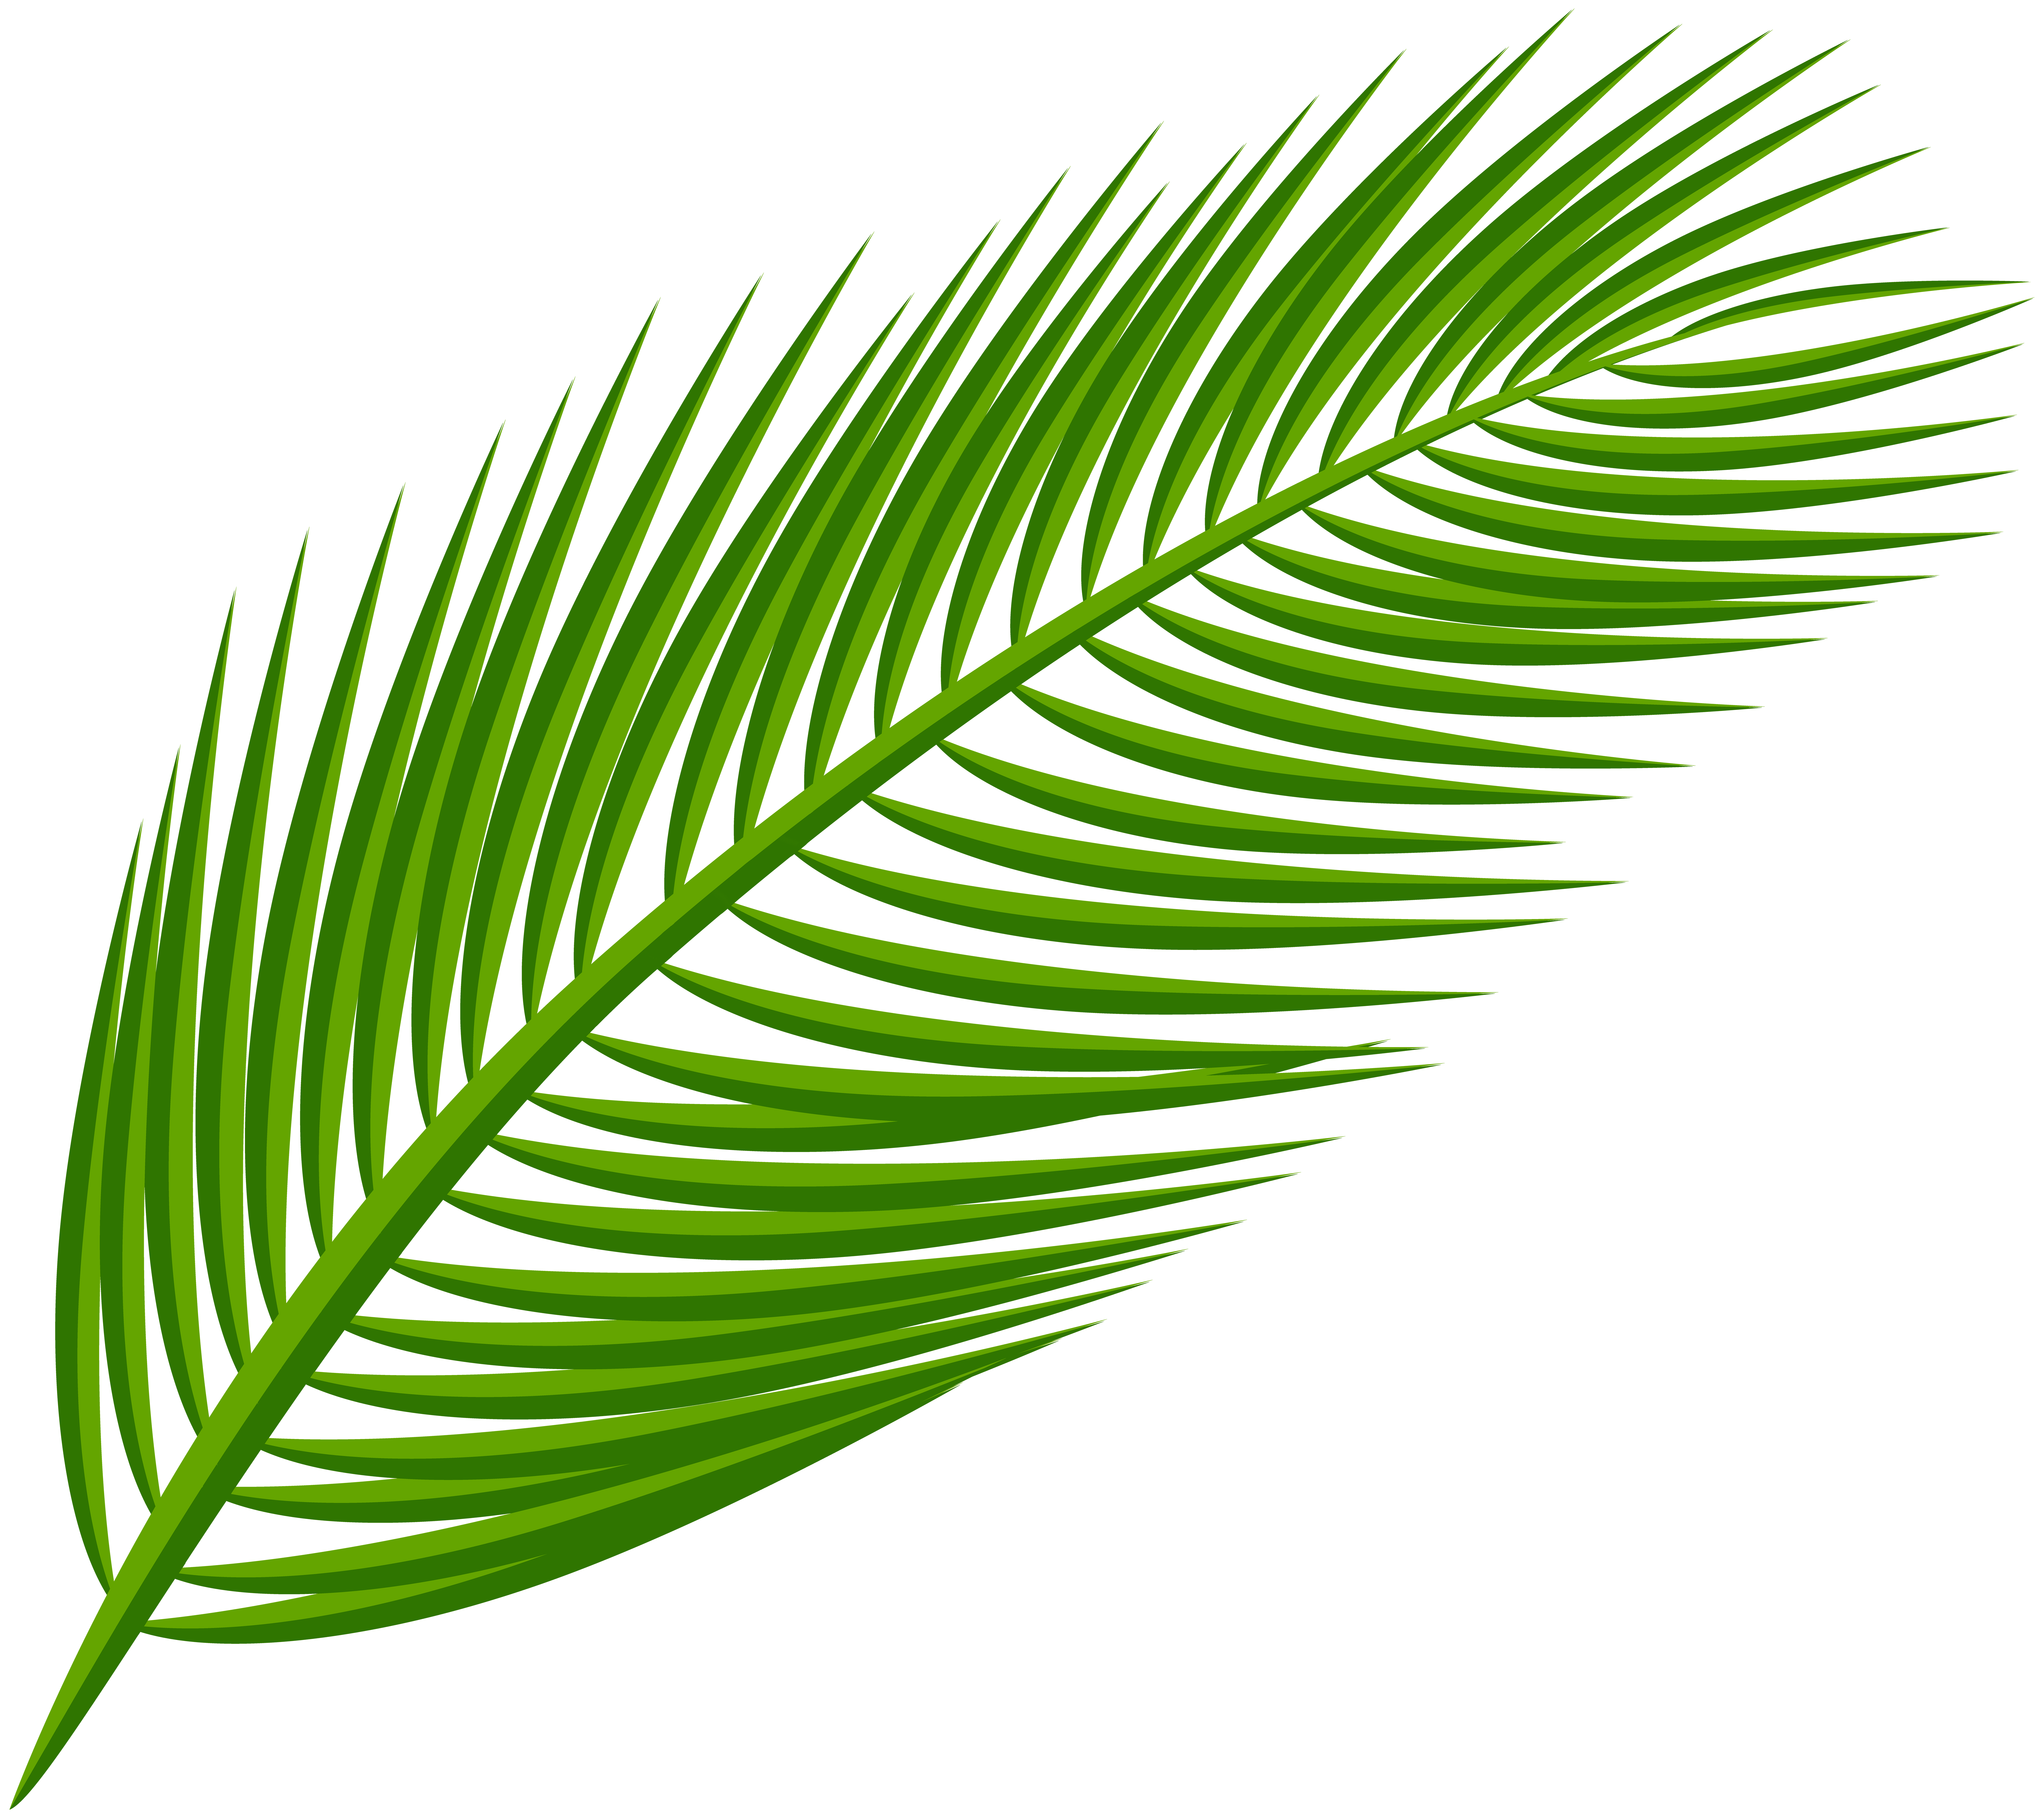 Leaf download best on. Free clipart of palm leaves